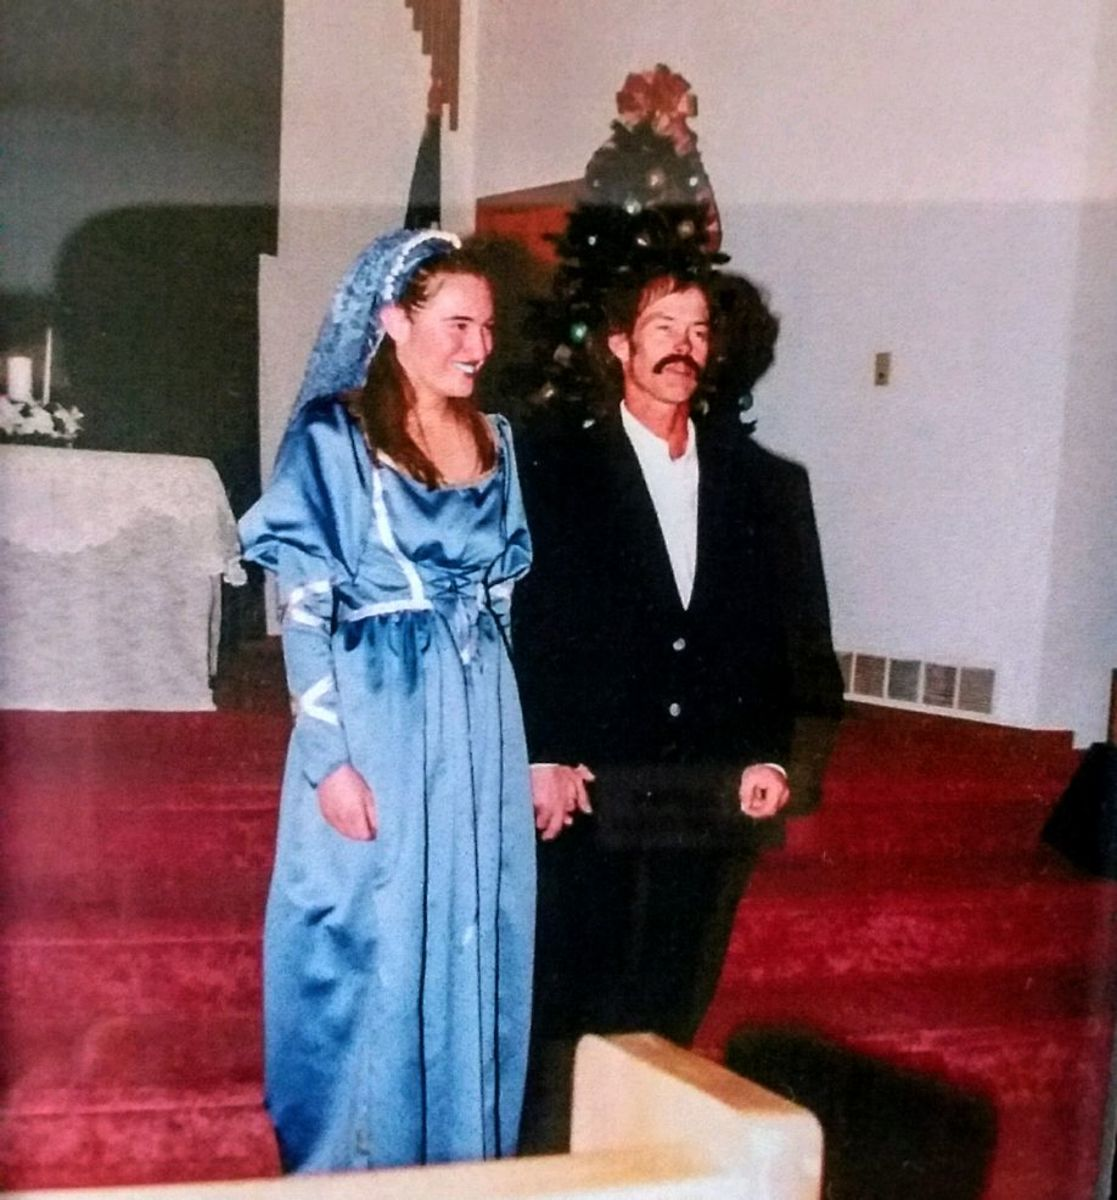 My mother and I made this gown, modifying a pattern we bought. It was an adventure, first designing the dress, finding the lavender blue satin, and stumbling across a pattern which was close to my ideal. But the memories are worth the trouble.